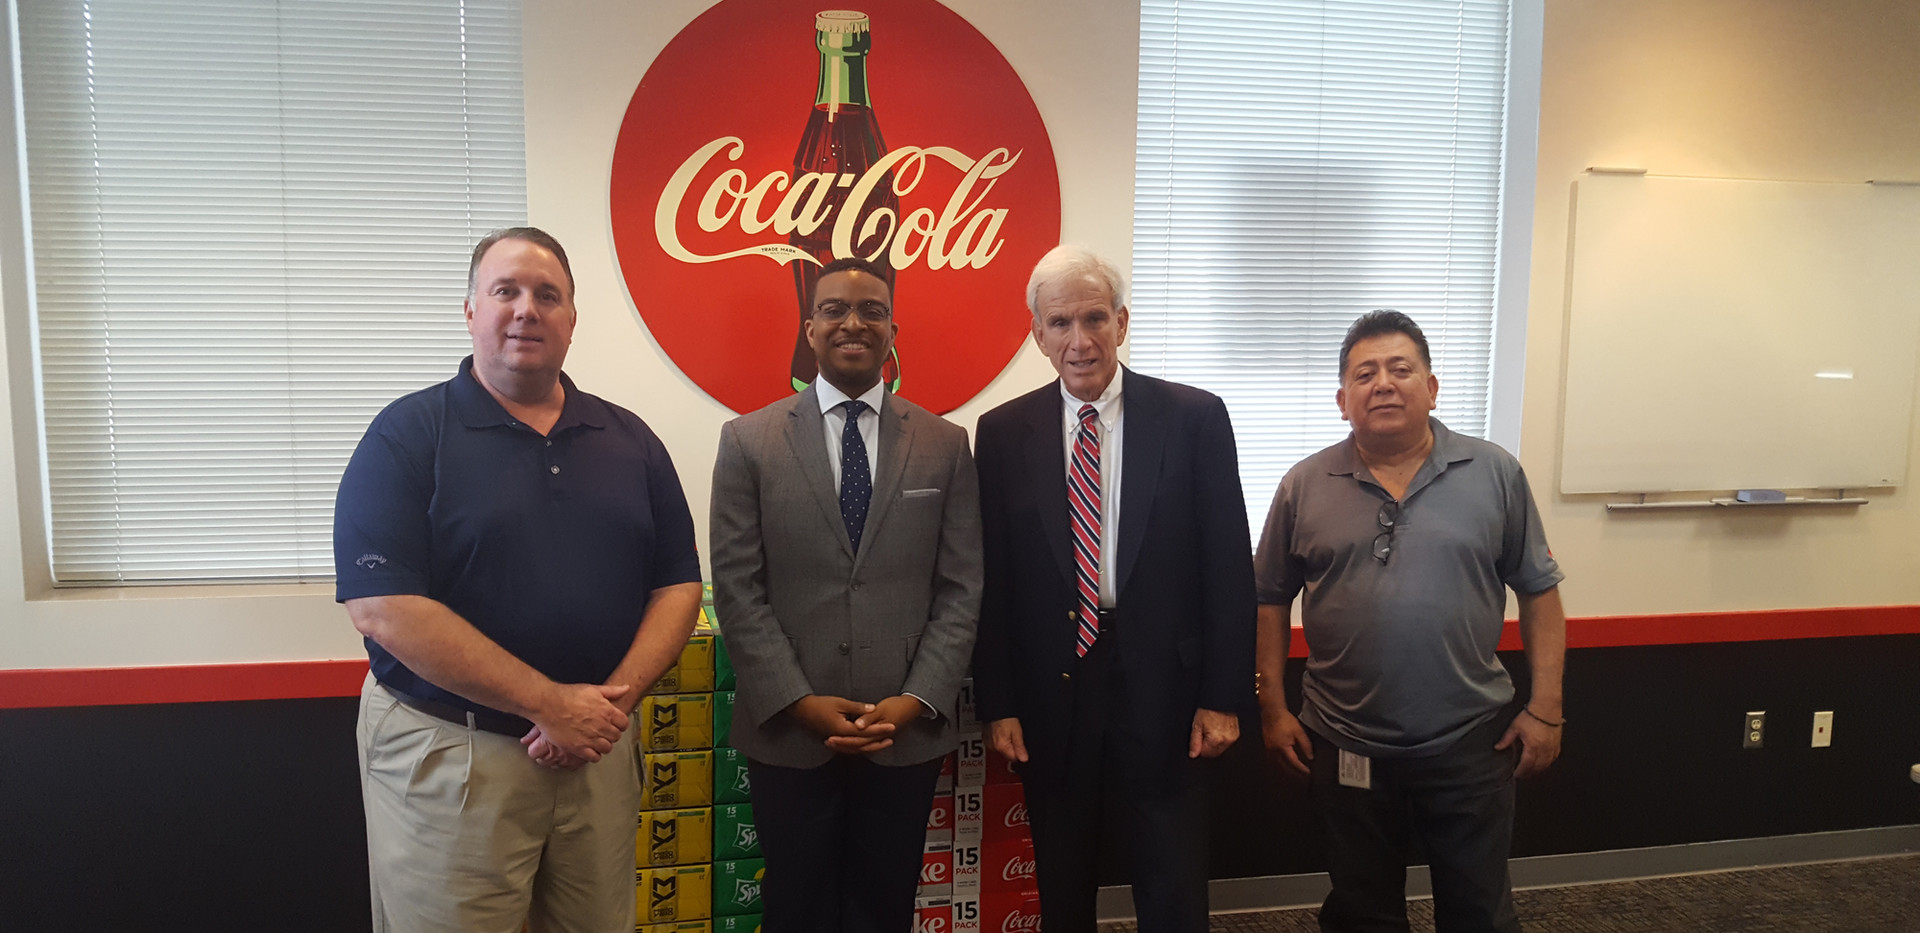 Senator Dick Saslaw (D-Fairfax) visits with associates from Coca-Cola Alexandria